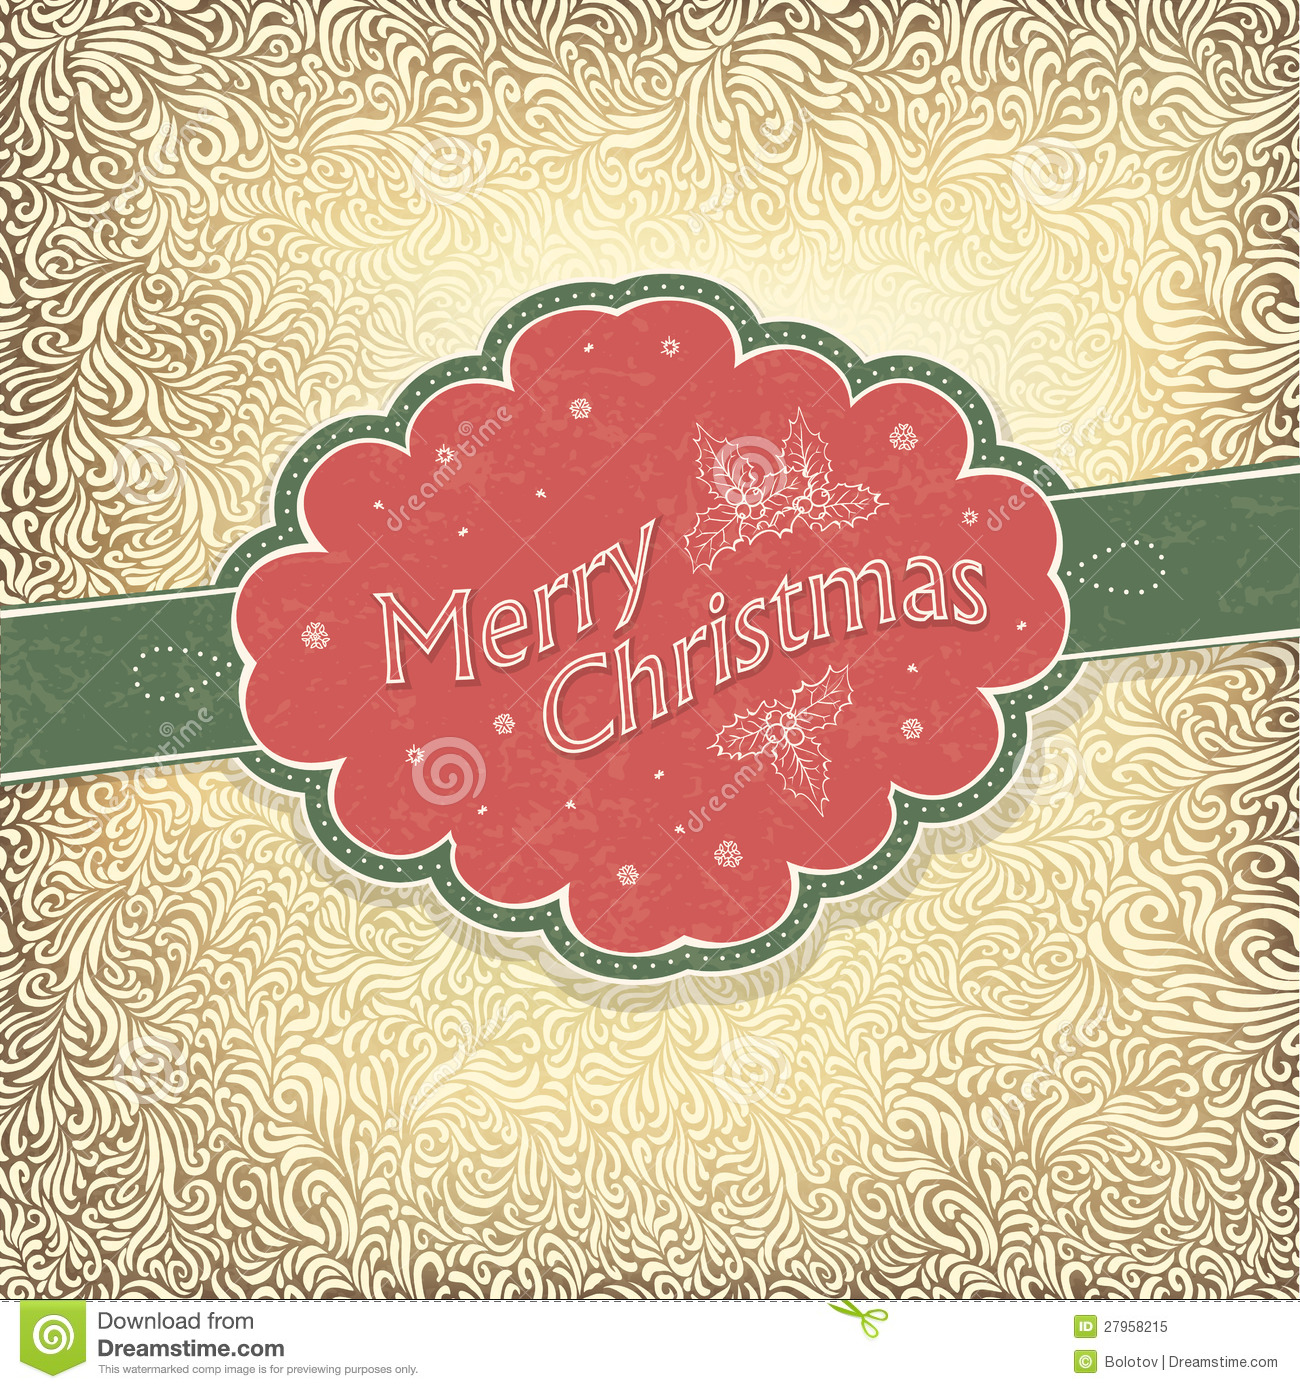 merry christmas vintage card stock vector image 27958215. Black Bedroom Furniture Sets. Home Design Ideas